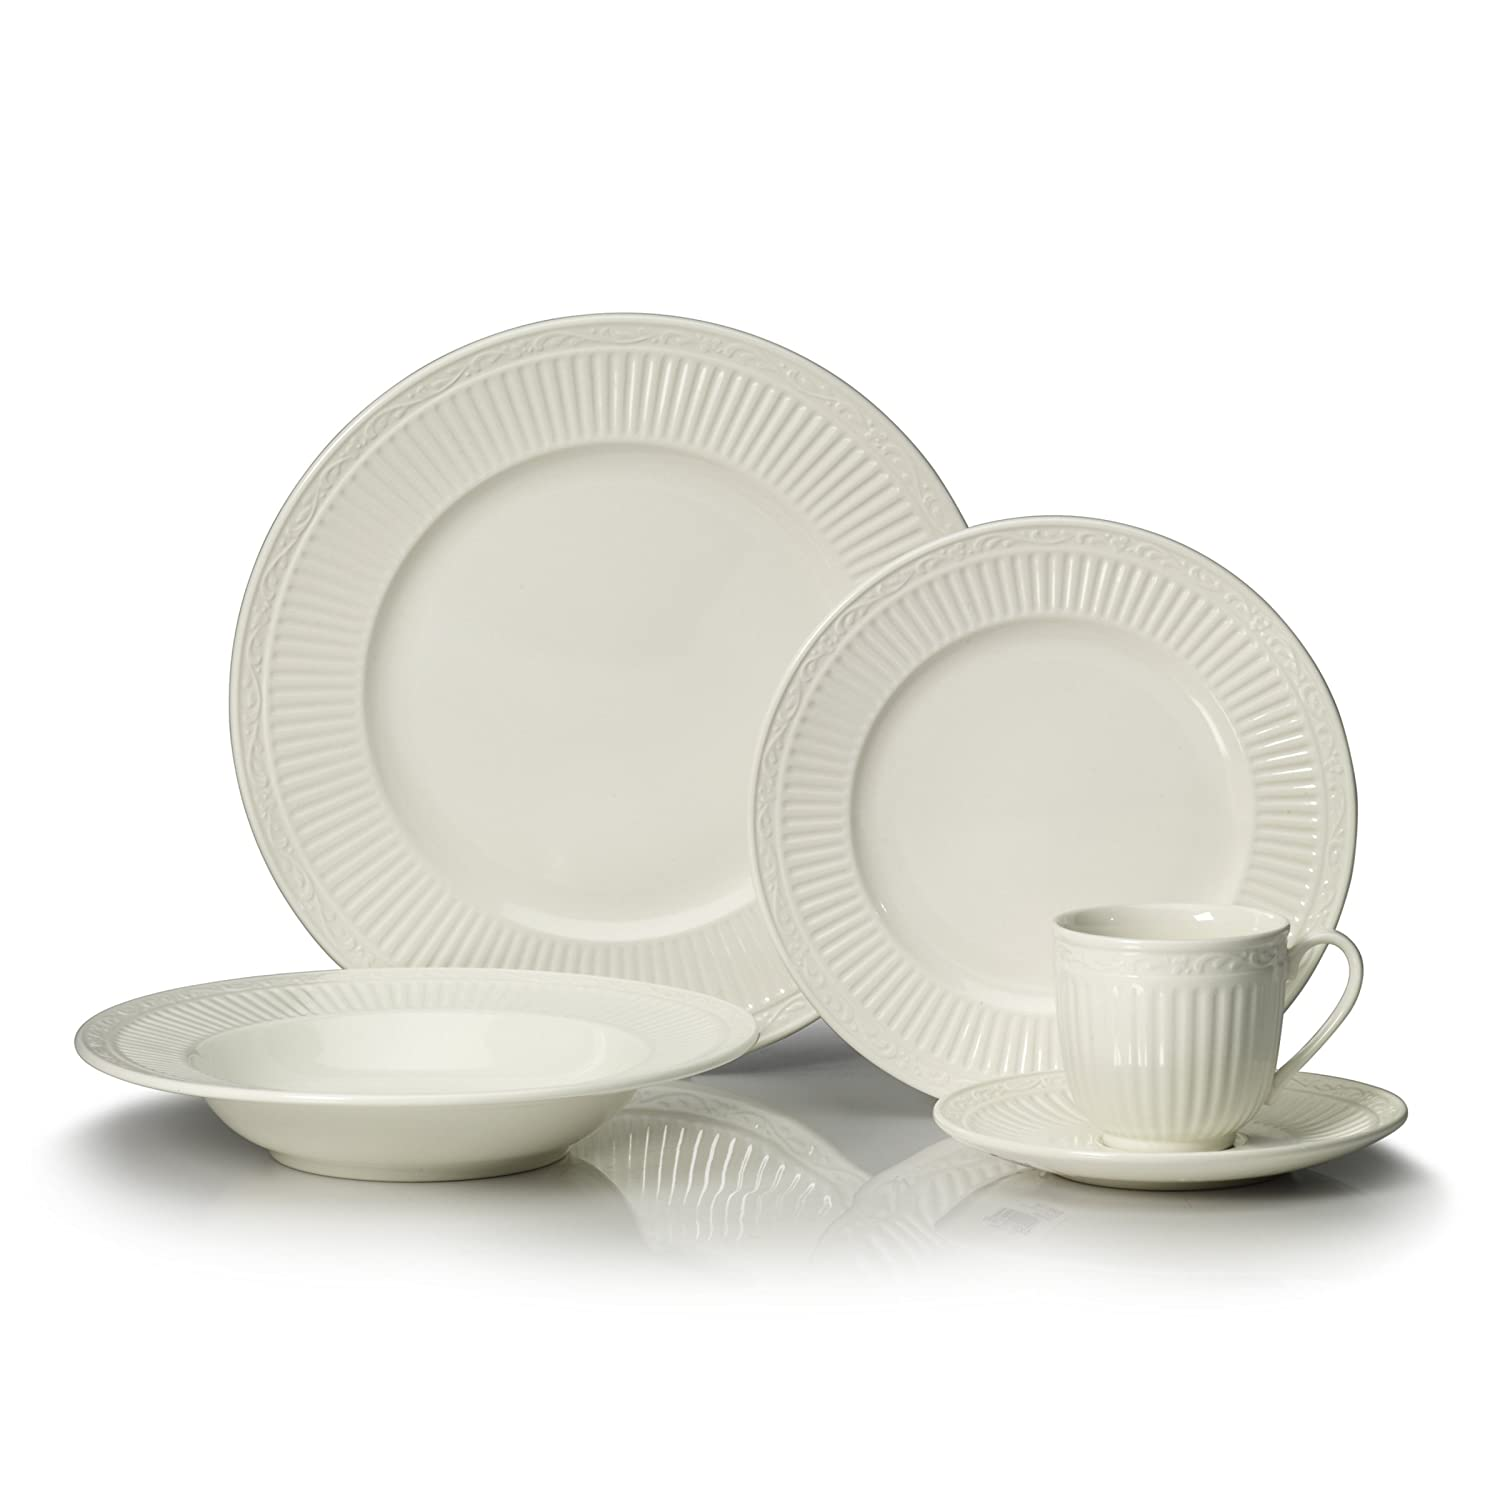 Amazon.com Mikasa Italian Countryside 40-Piece Dinnerware Set Service for 8 Kitchen \u0026 Dining  sc 1 st  Amazon.com & Amazon.com: Mikasa Italian Countryside 40-Piece Dinnerware Set ...